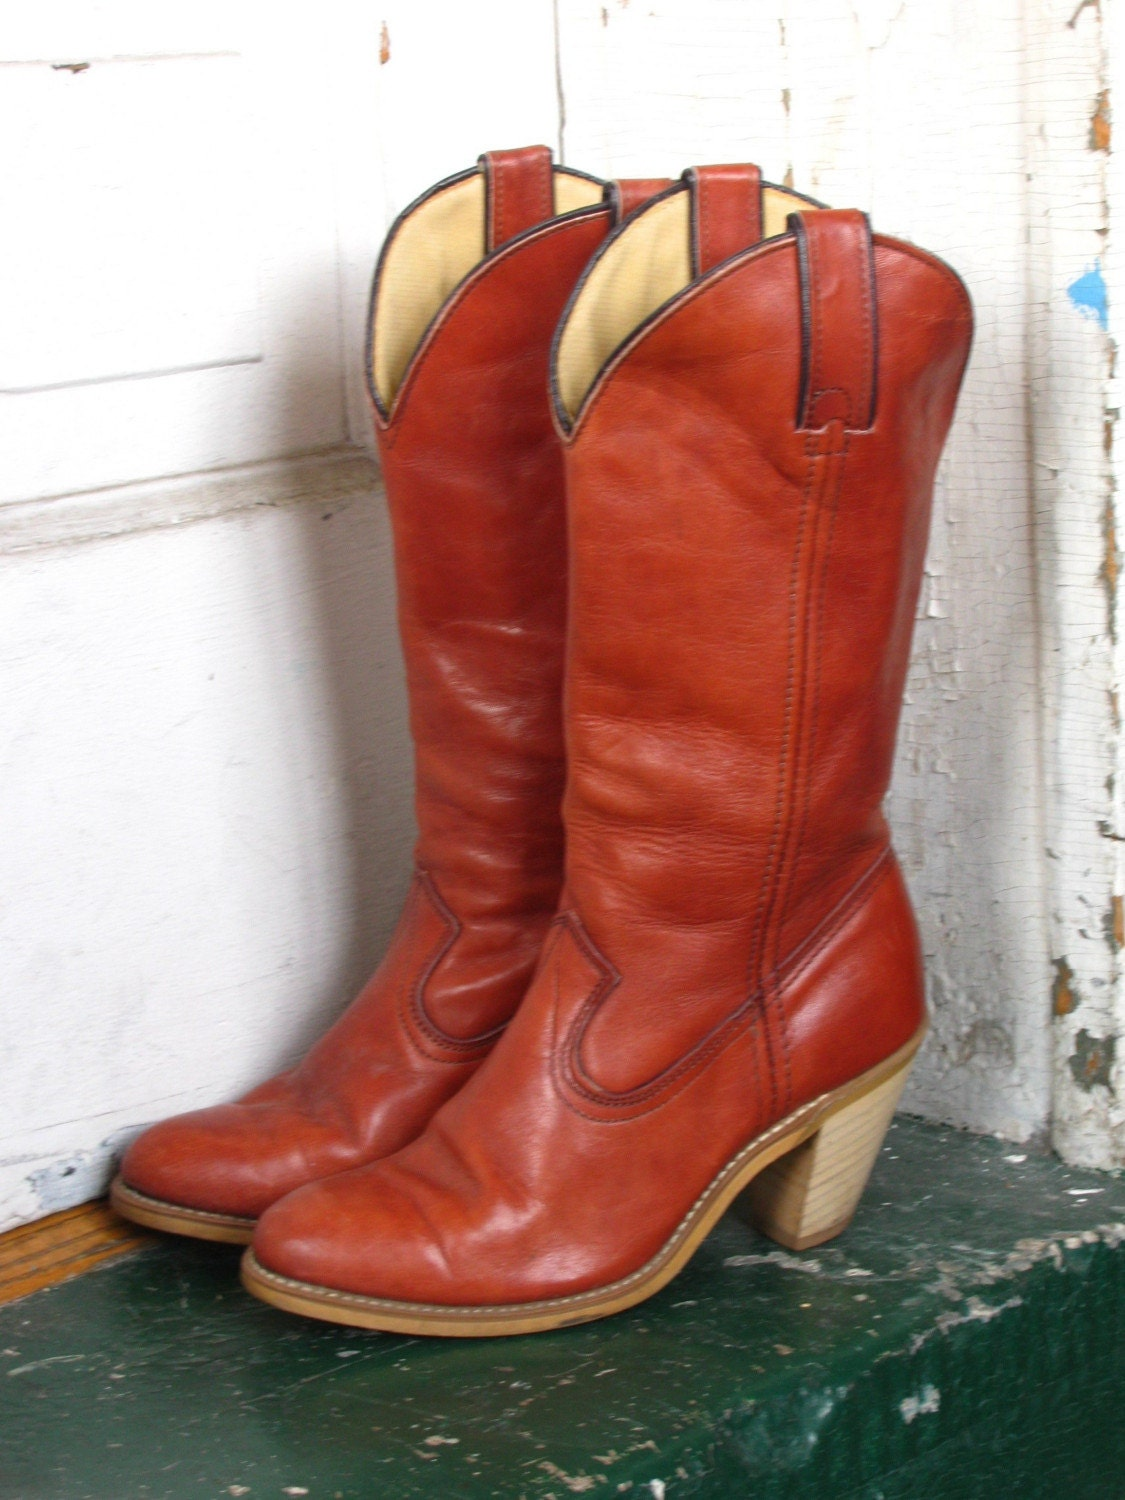 70s stacked heel cowboy boots 6 by anewlifeforyou on etsy